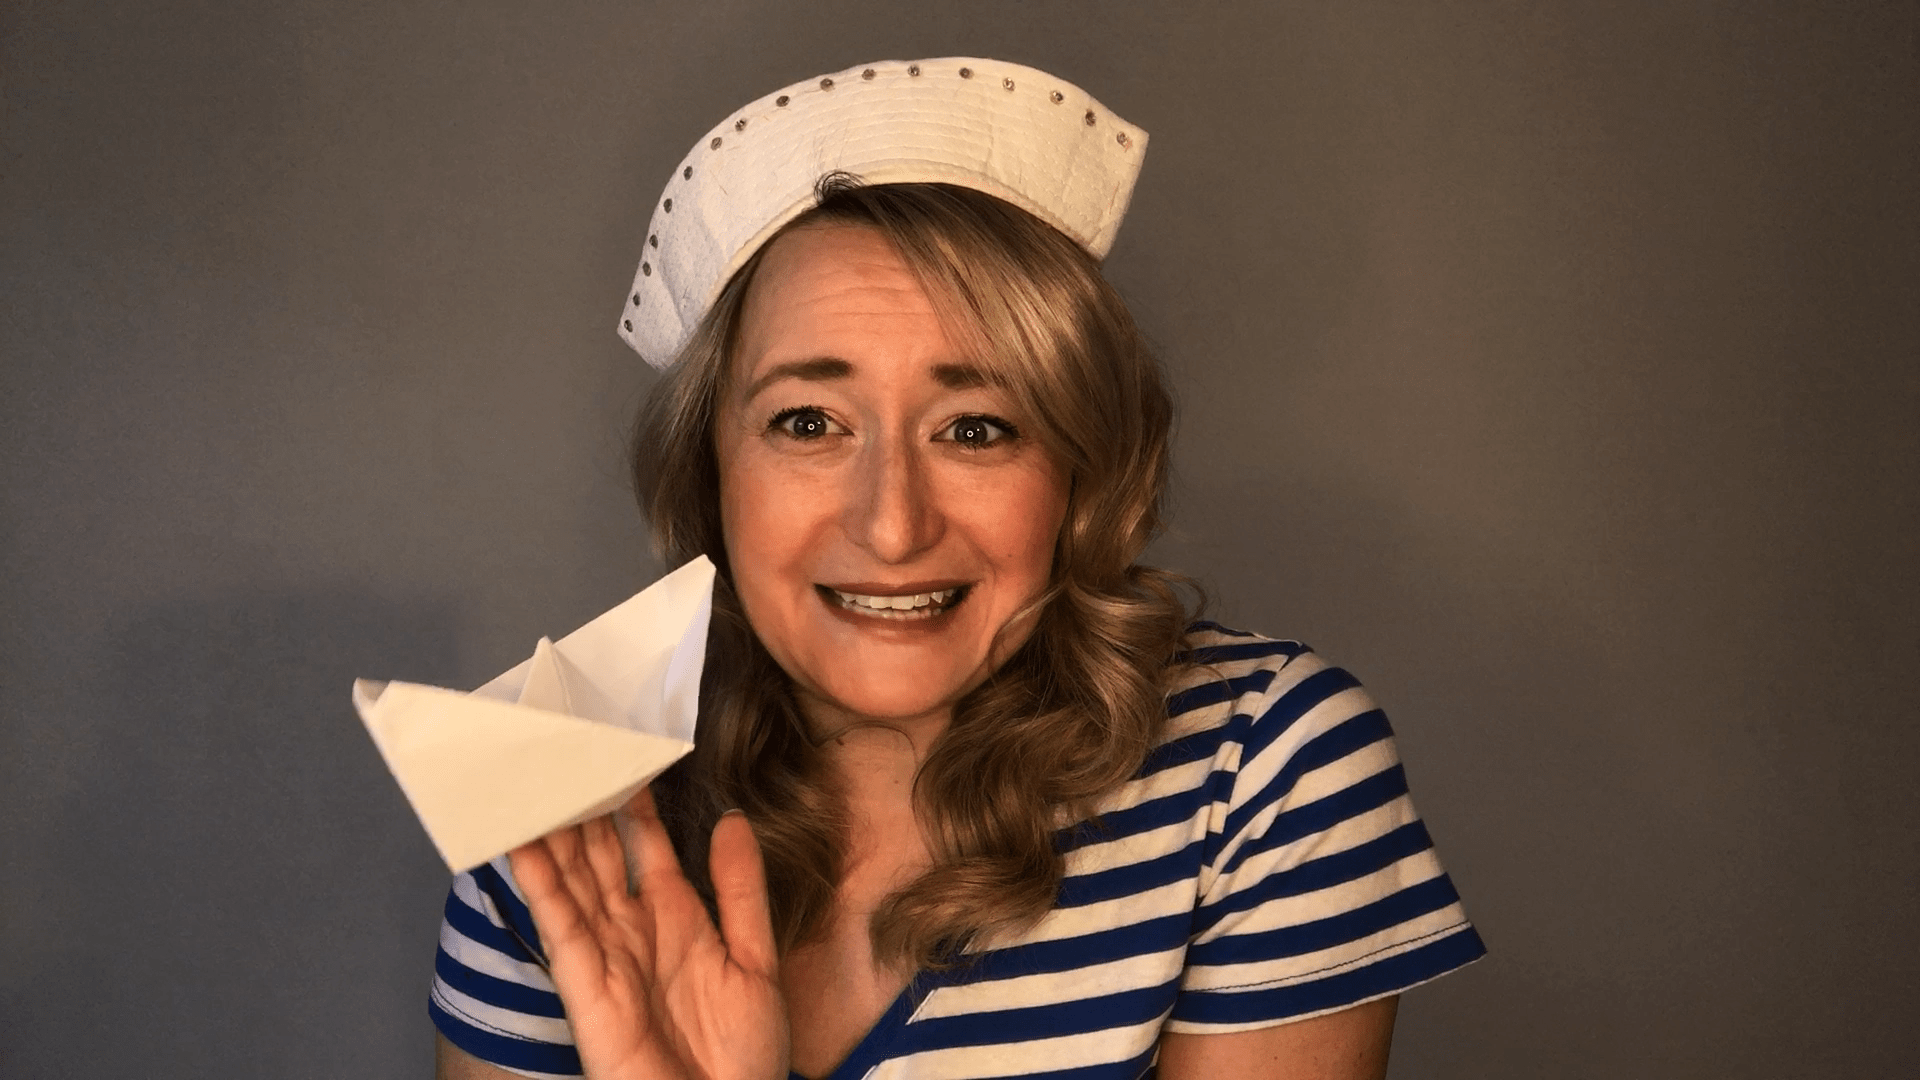 picture me dresses as a sailor, holding a paper boat